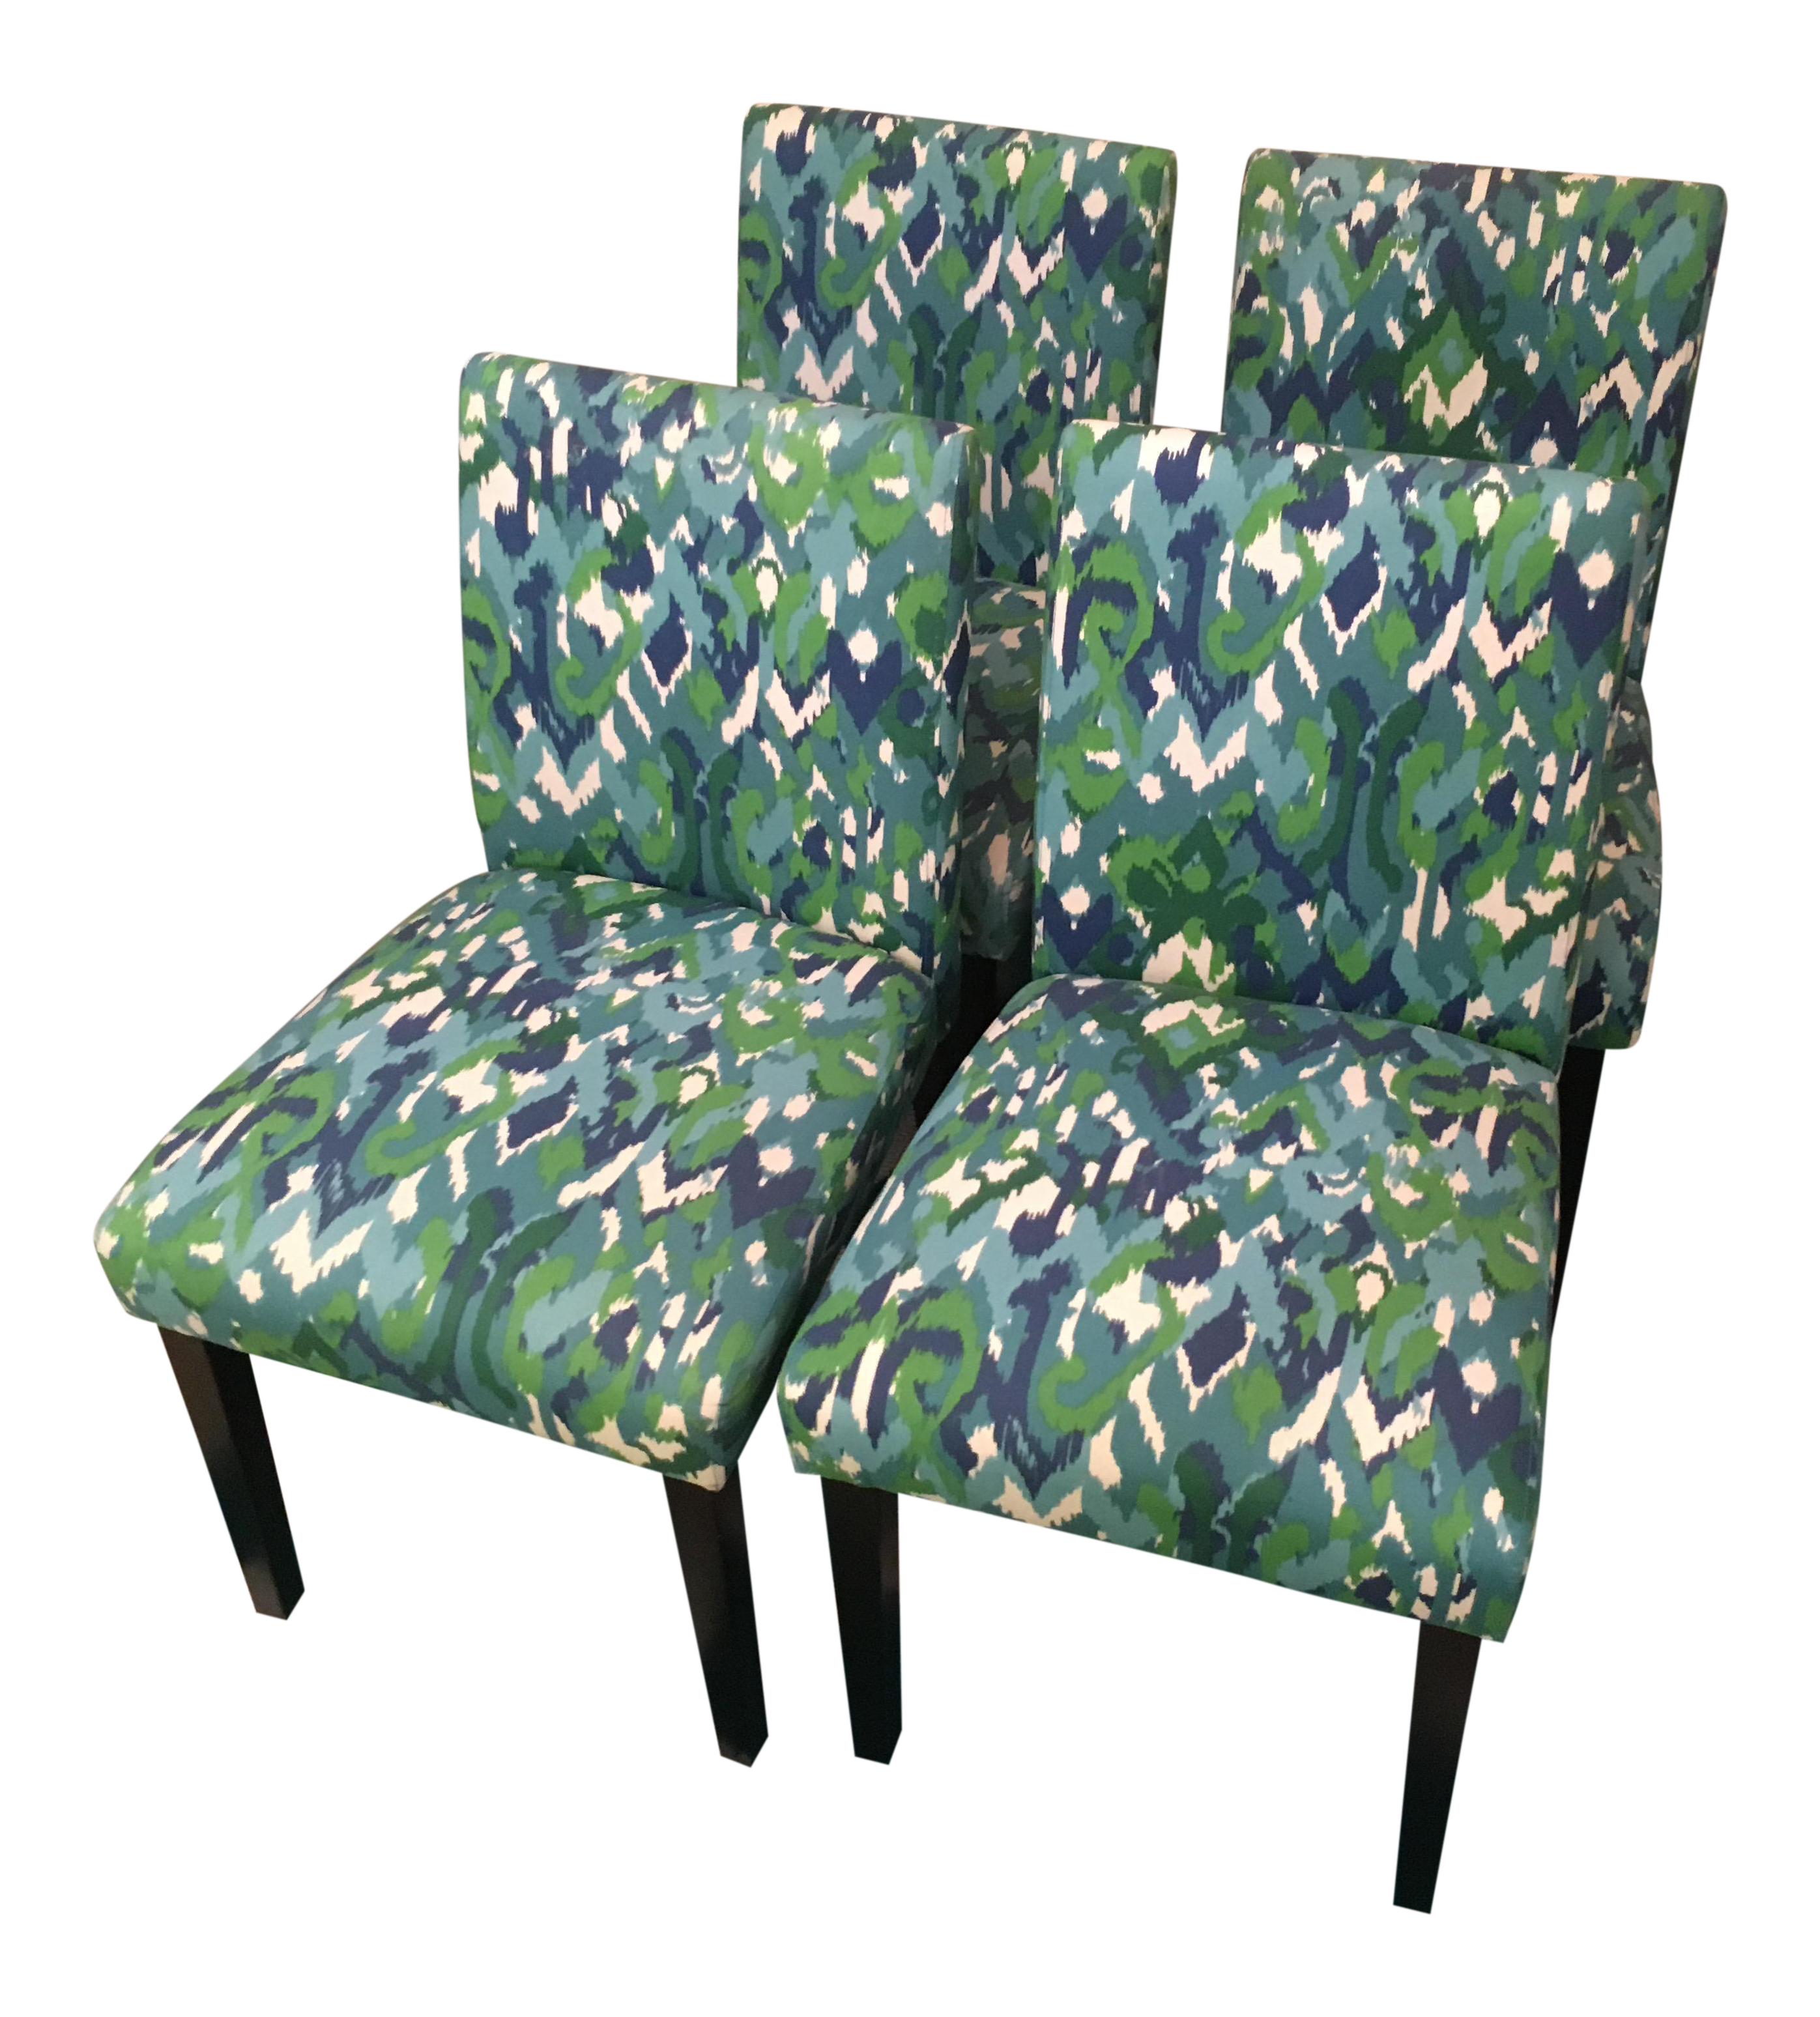 Teal Ikat Design Parsons Fabric Chairs Set of 4 Chairish : 11ca3f49 4516 405d acc8 3645a0392da1aspectfitampwidth640ampheight640 from www.chairish.com size 640 x 640 jpeg 60kB